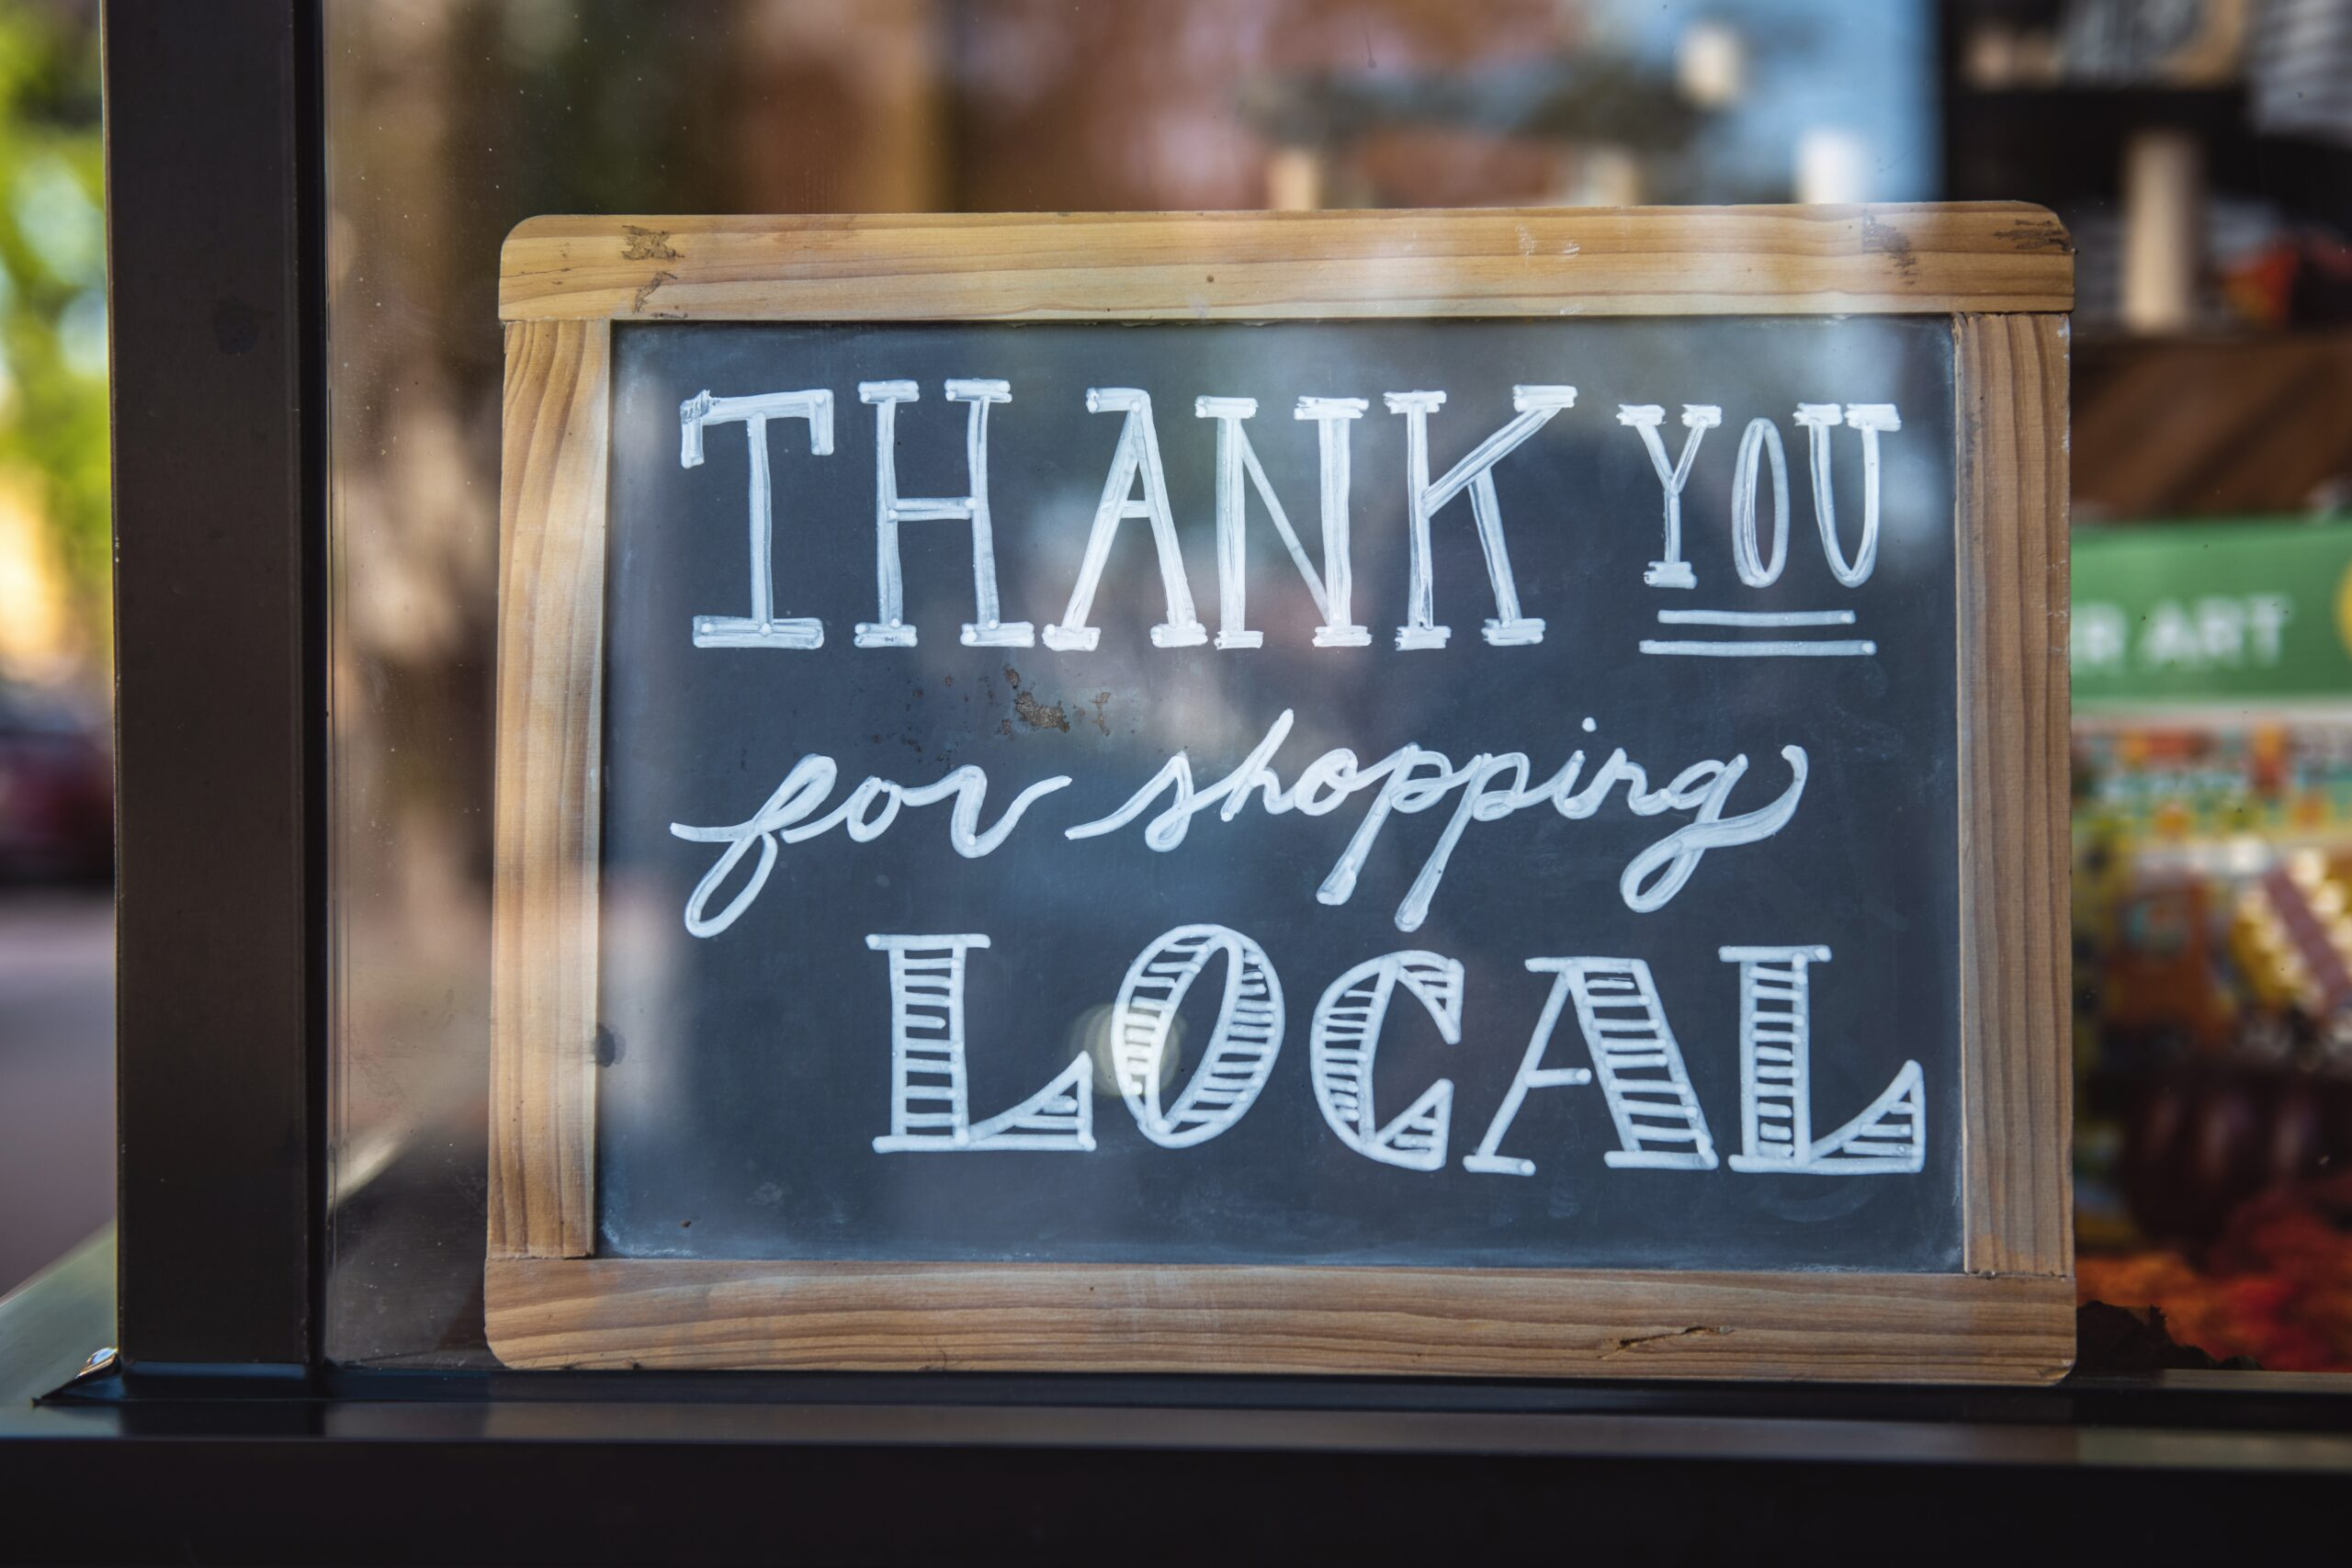 Thank you for shopping local small business sign in window